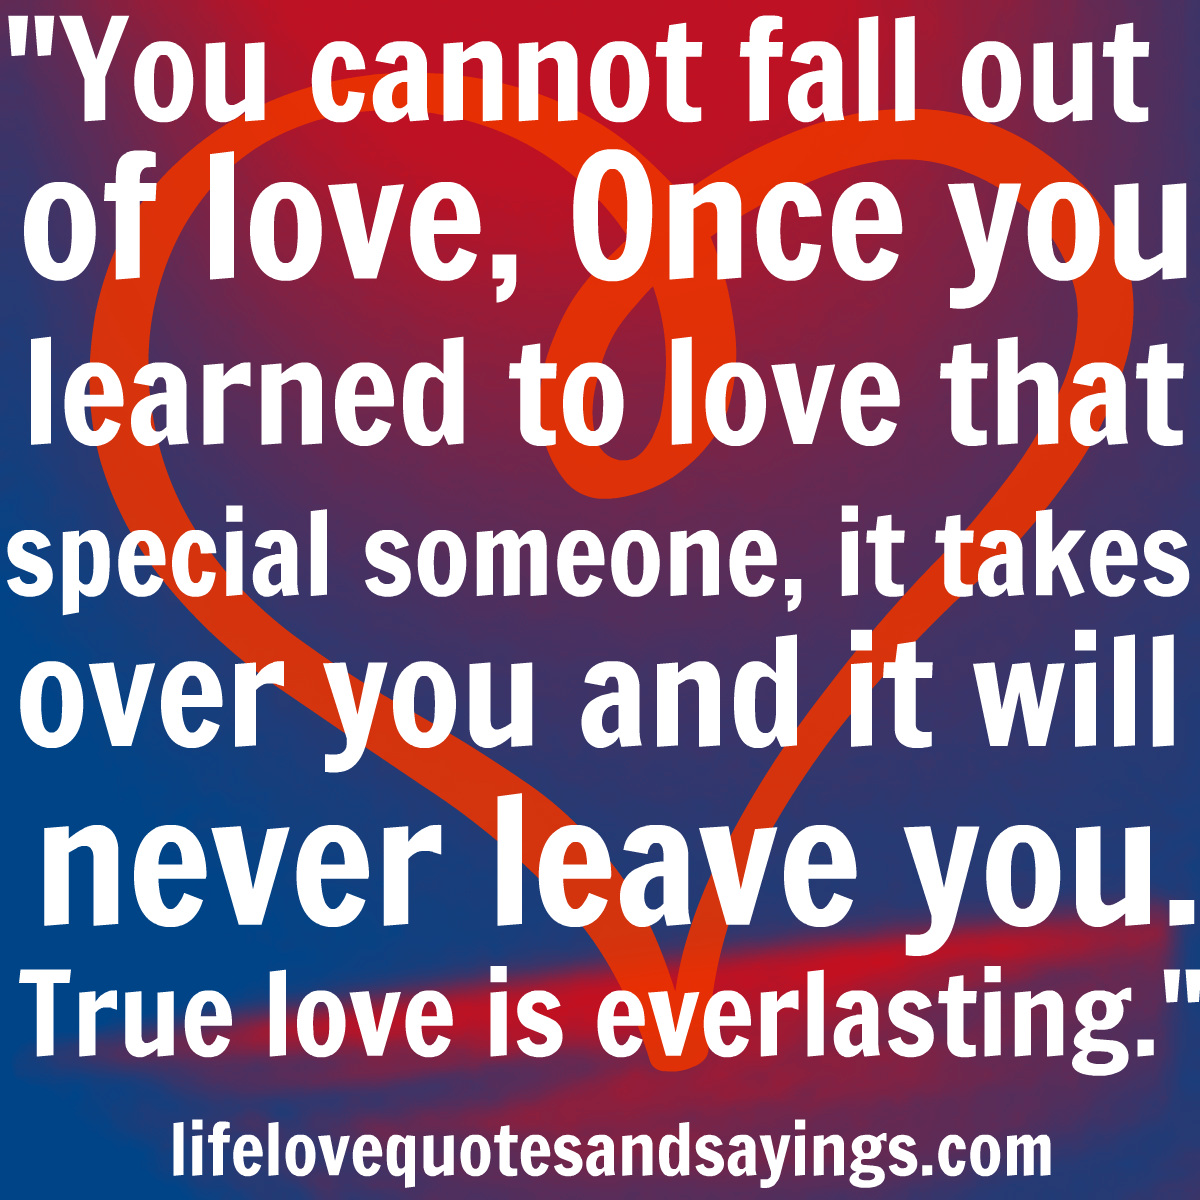 Love Quote And Sayings: Falling Out Of Love Quotes And Sayings. QuotesGram